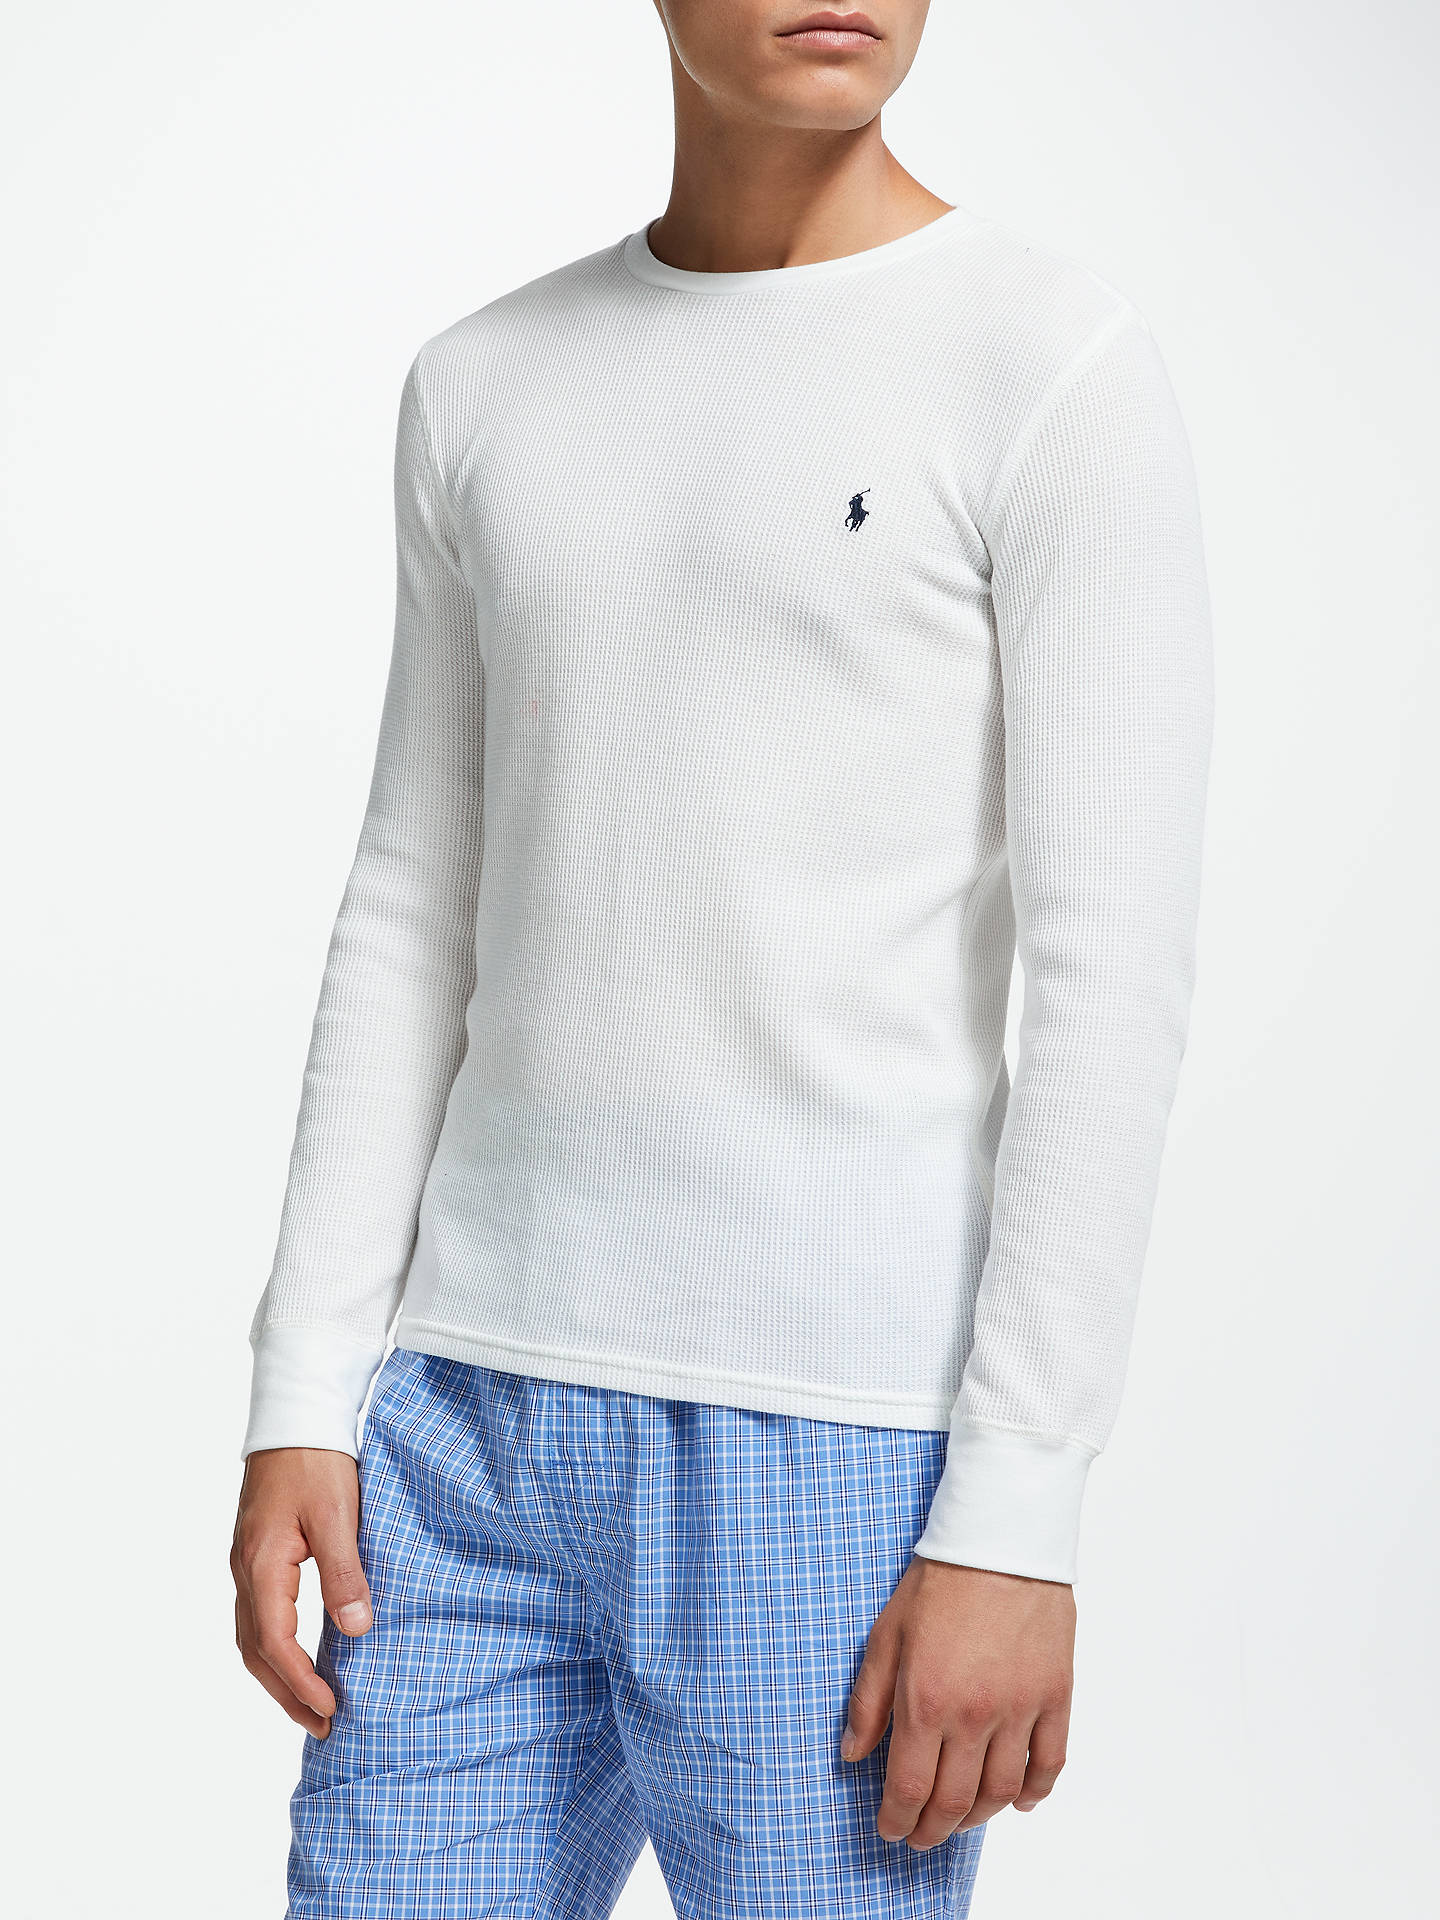 df2c849d5 Buy Polo Ralph Lauren Waffle Long Sleeve T-Shirt, White, M Online at ...